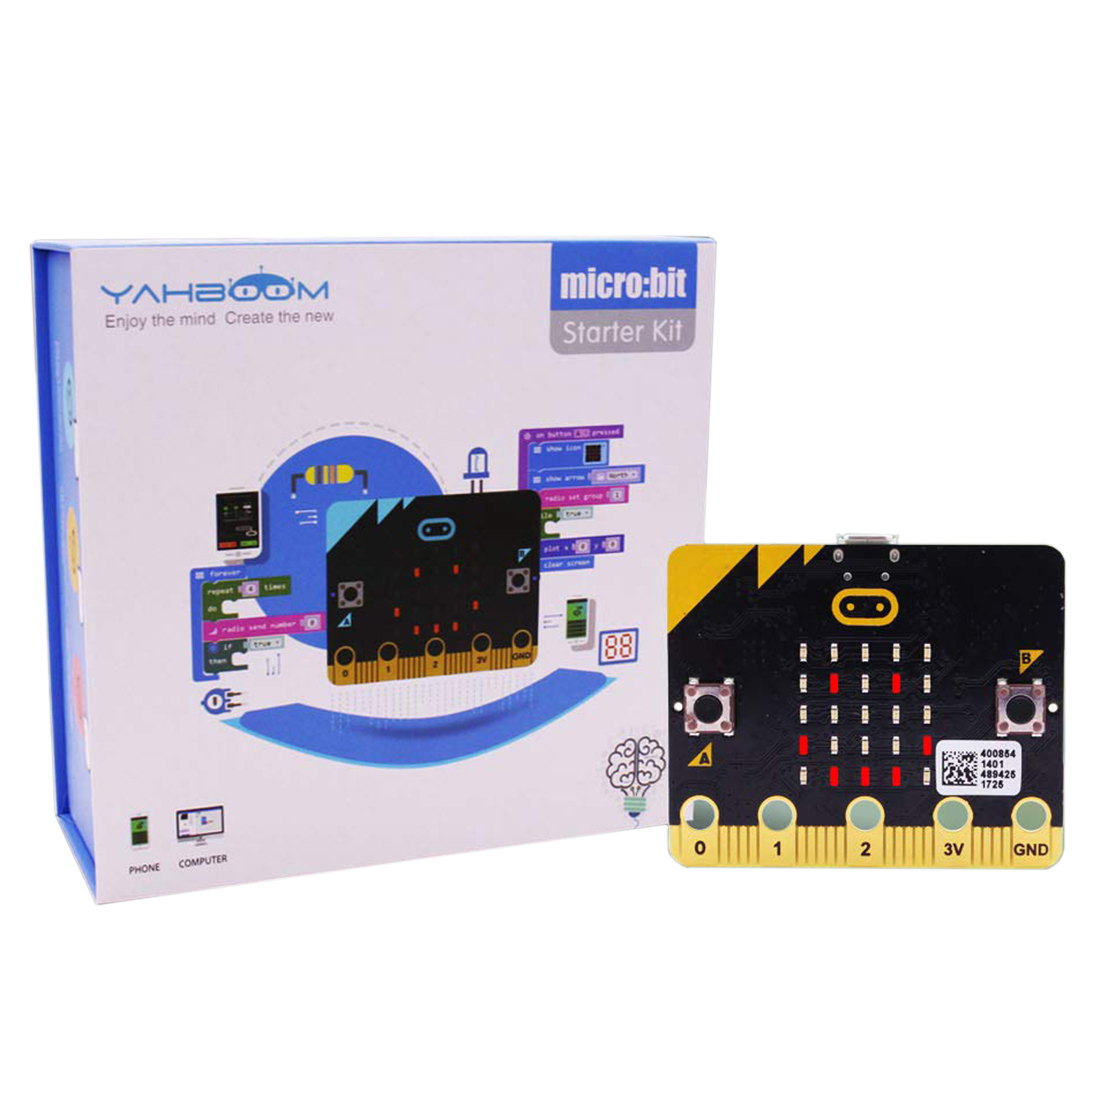 Micro:Bit Kit Starter Learning Kit Micro Bit Board Graphical Programmable STEM Toys Guidance Manual For Kids(Micro:Bit Board)